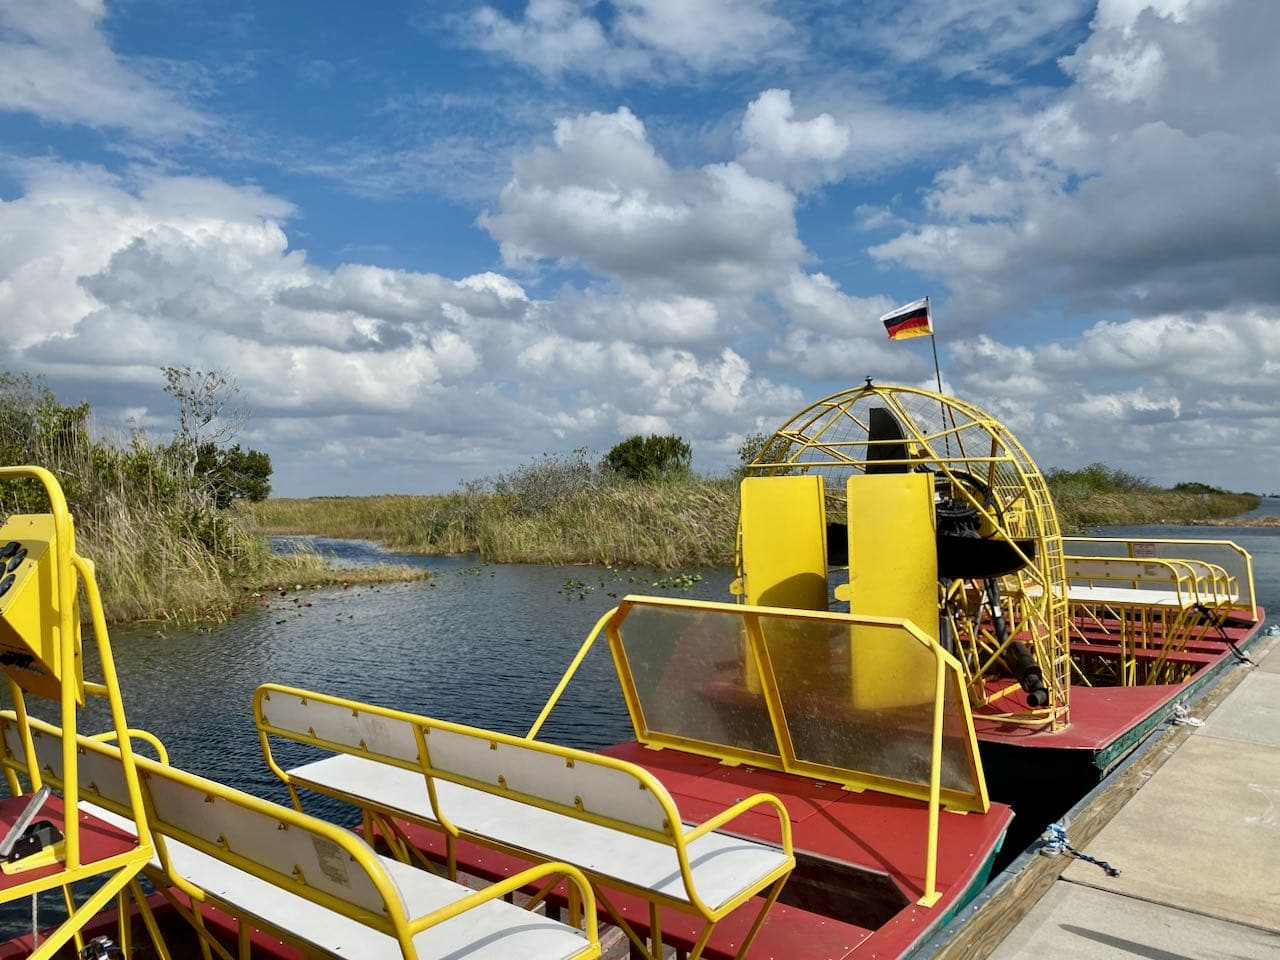 Airboat tour Everglades National Park Attractions and Places to Stop Along the Tamiami Trail/U.S. Highway 41